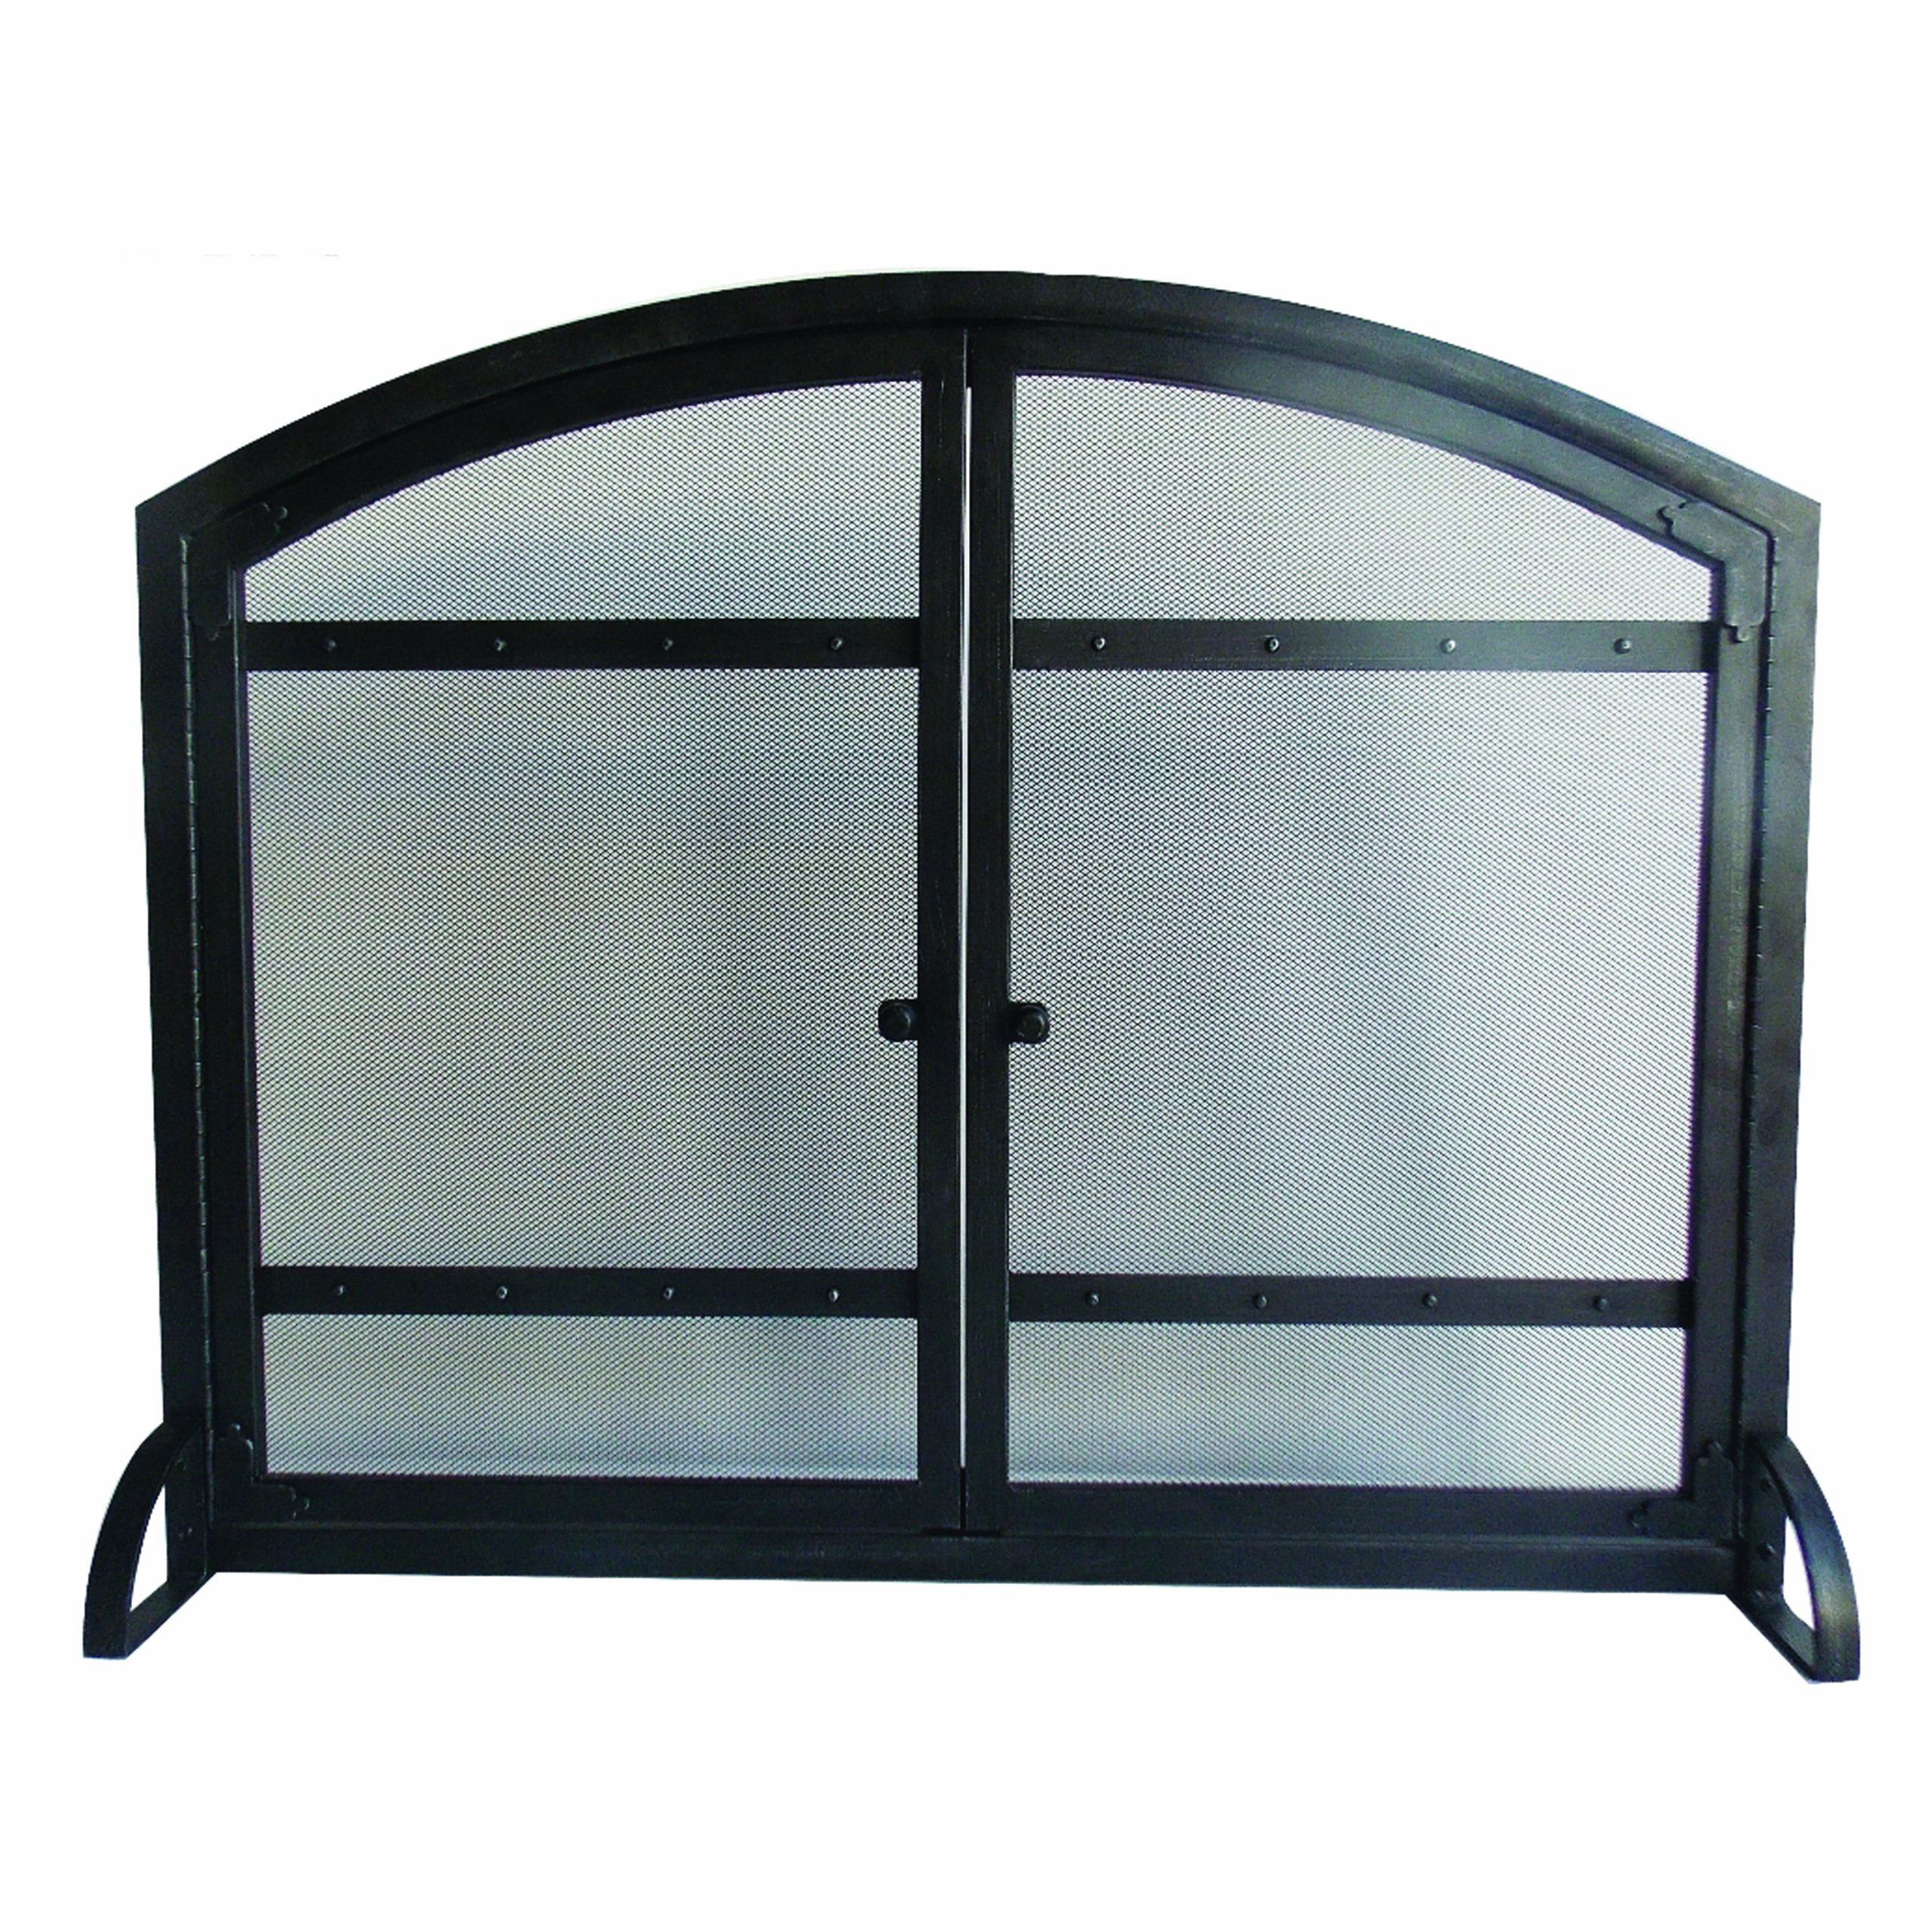 Pleasant Hearth Harper Arched Fireplace Screen with Doors by Pleasant Hearth